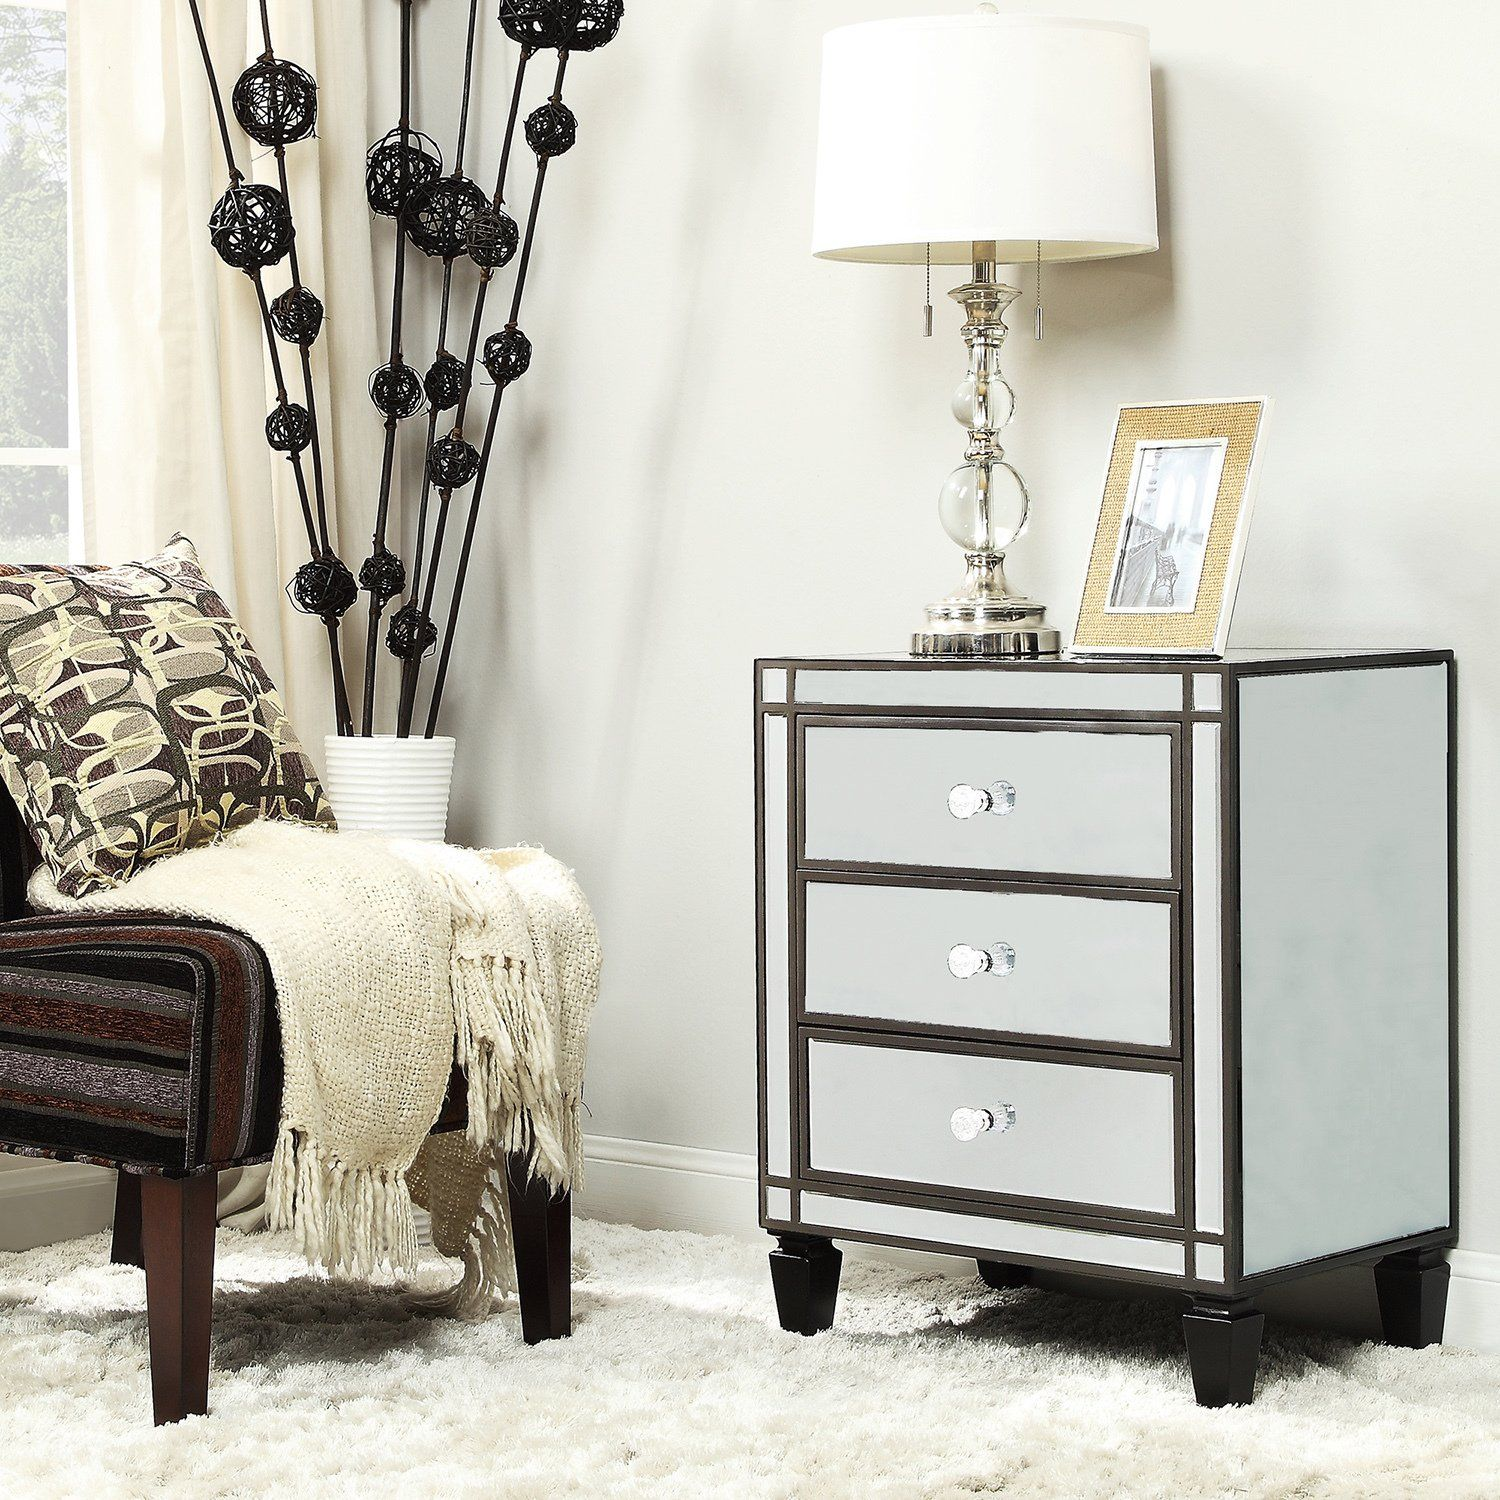 Metro Shop INSPIRE Q Escanaba Mirrored 3-drawer Black Trim Accent  Table-Nihoa Mirrored. Sofa End TablesBedside ...